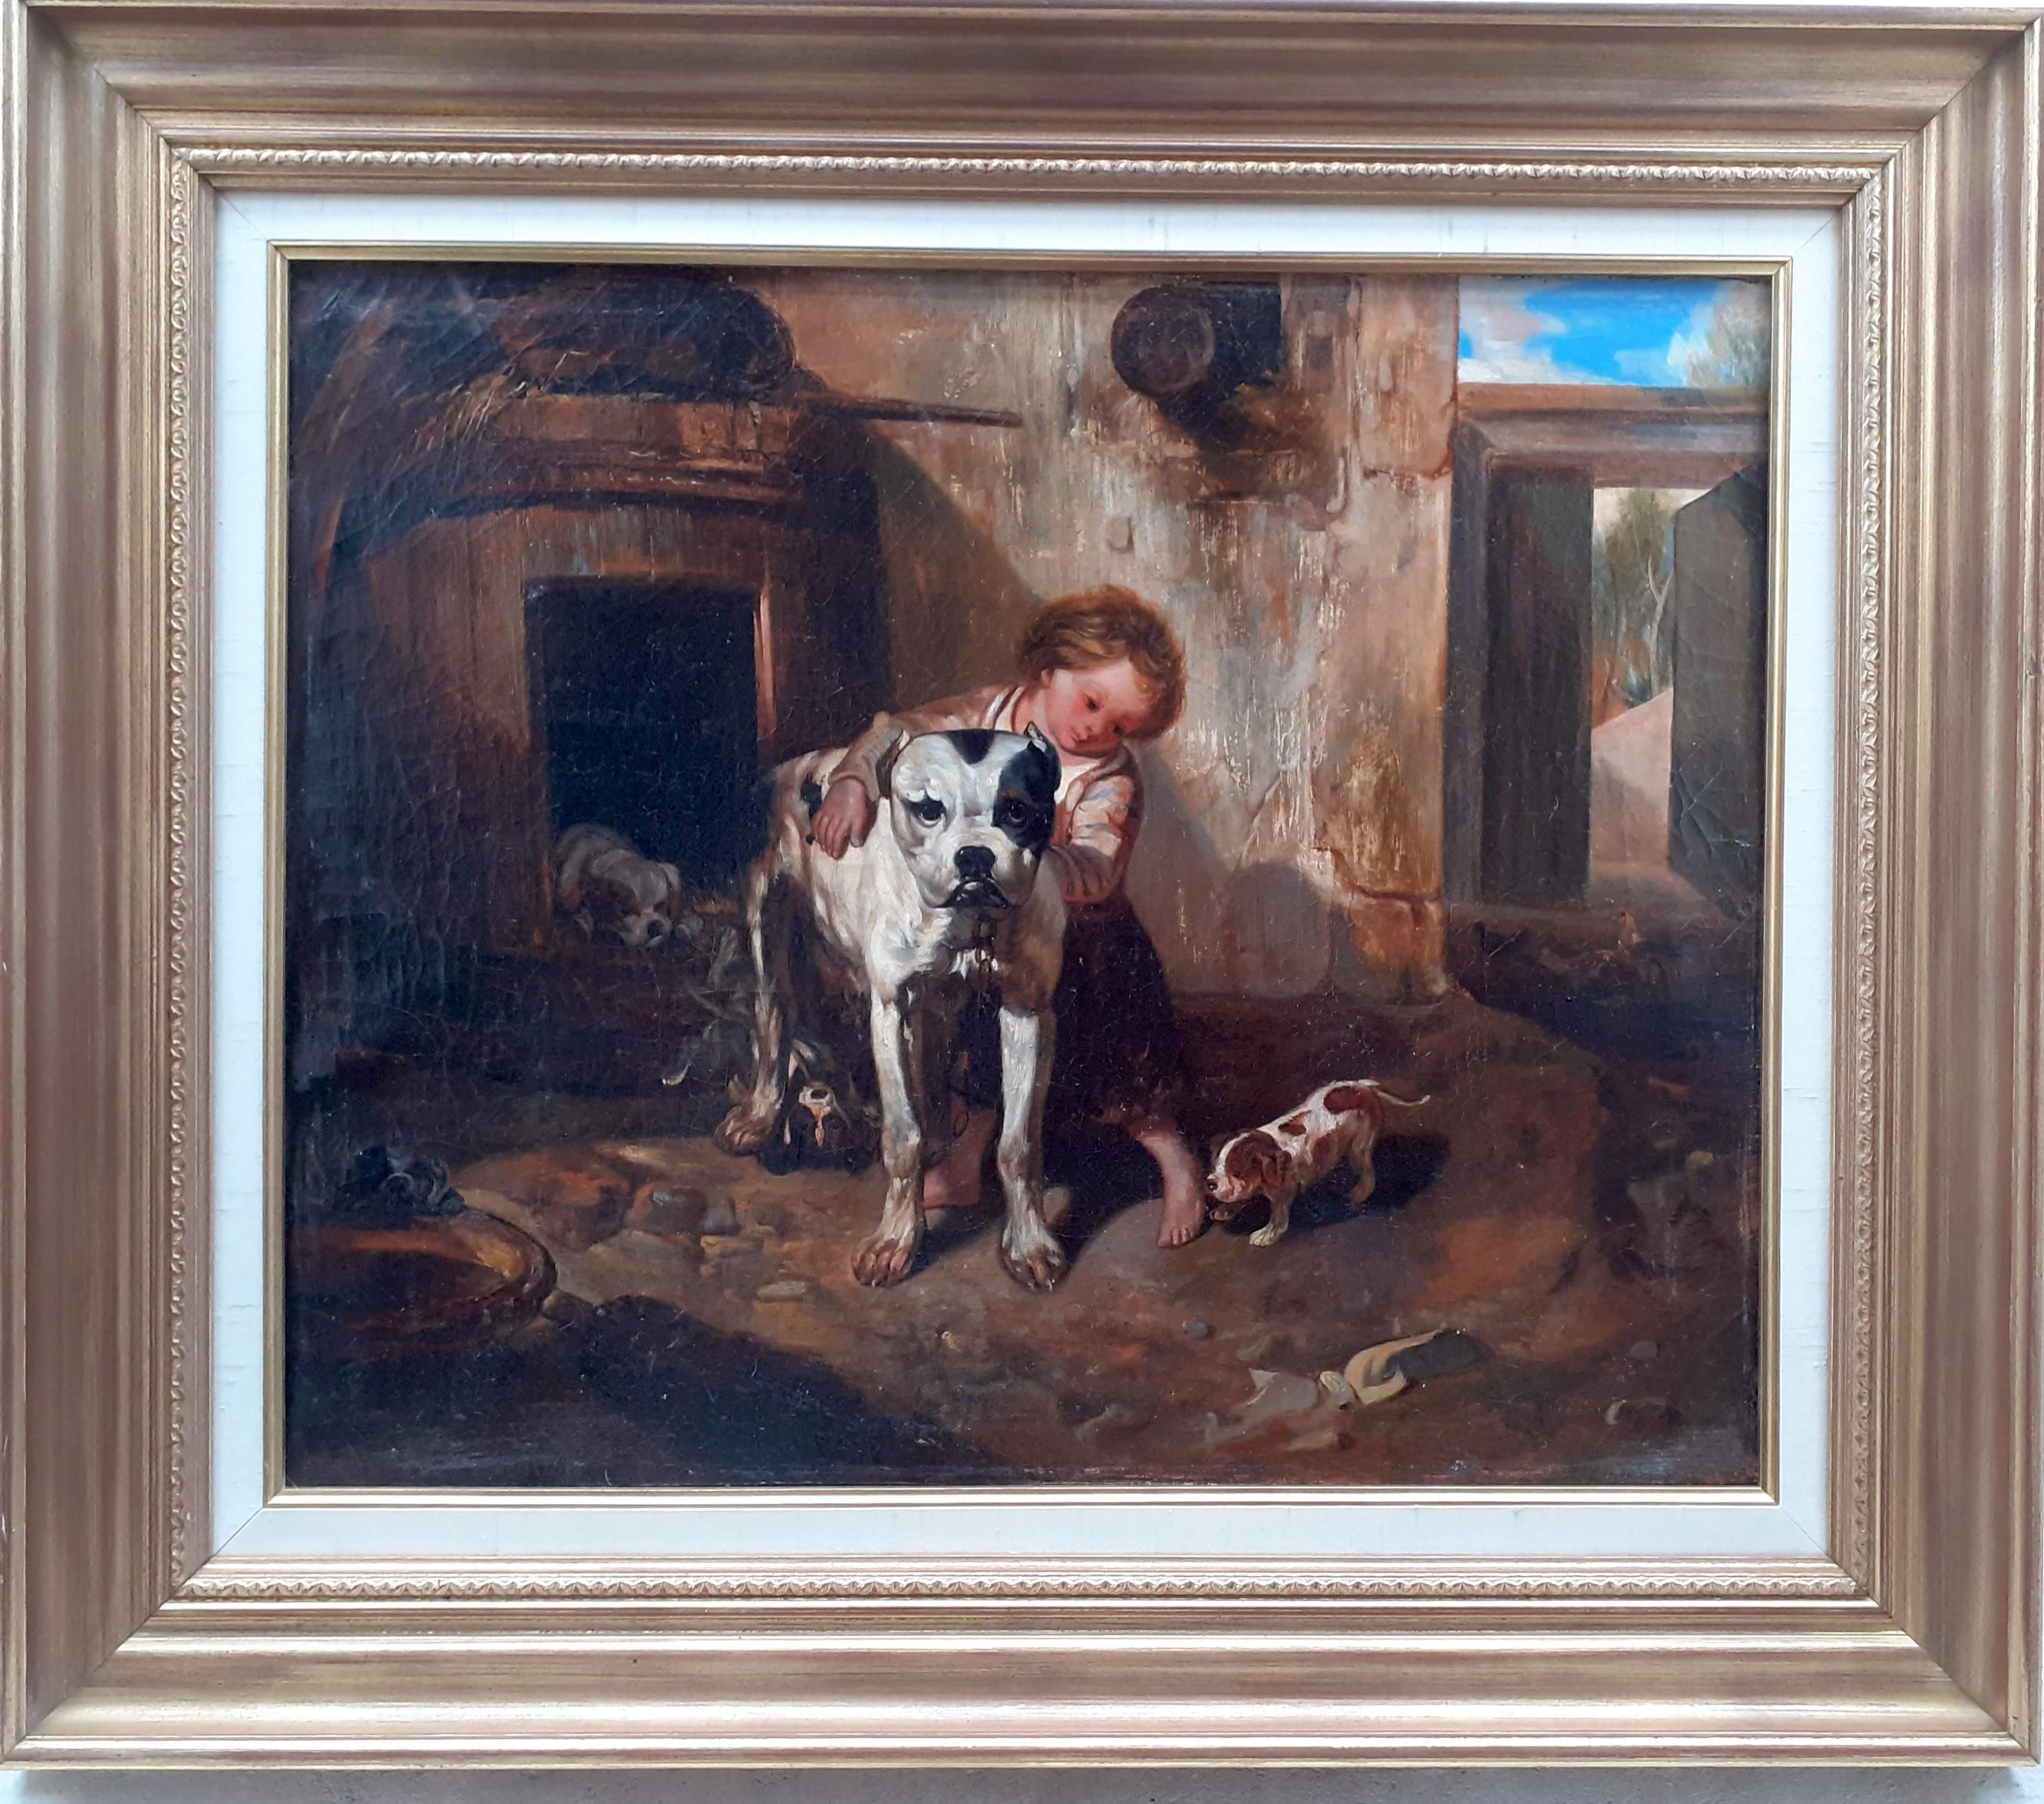 Mother dog and her puppies, 19th Century French Barbizonf armhouse painting